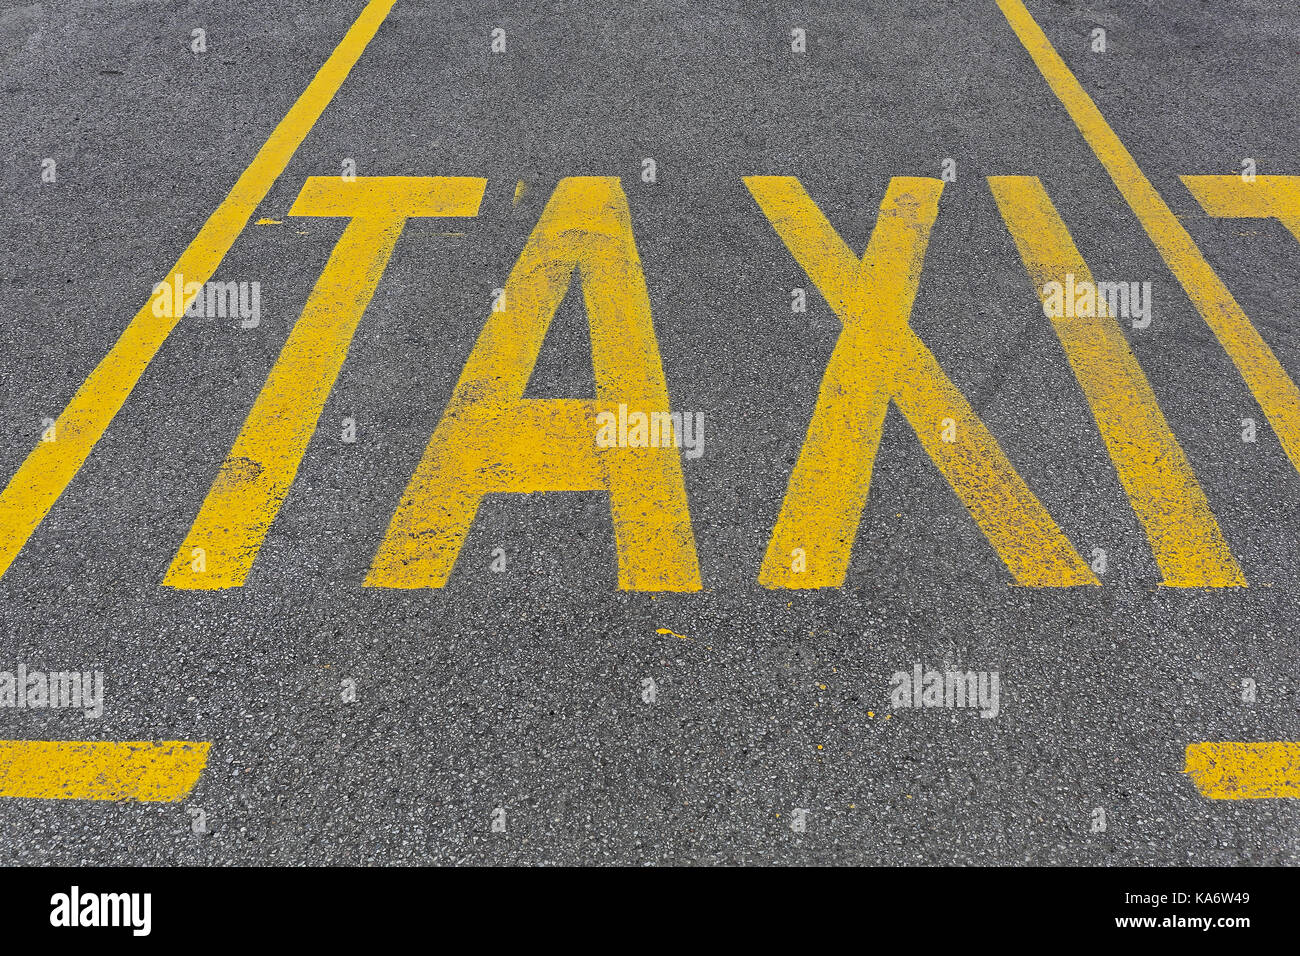 Yellow Taxi Parking Sign at Street - Stock Image